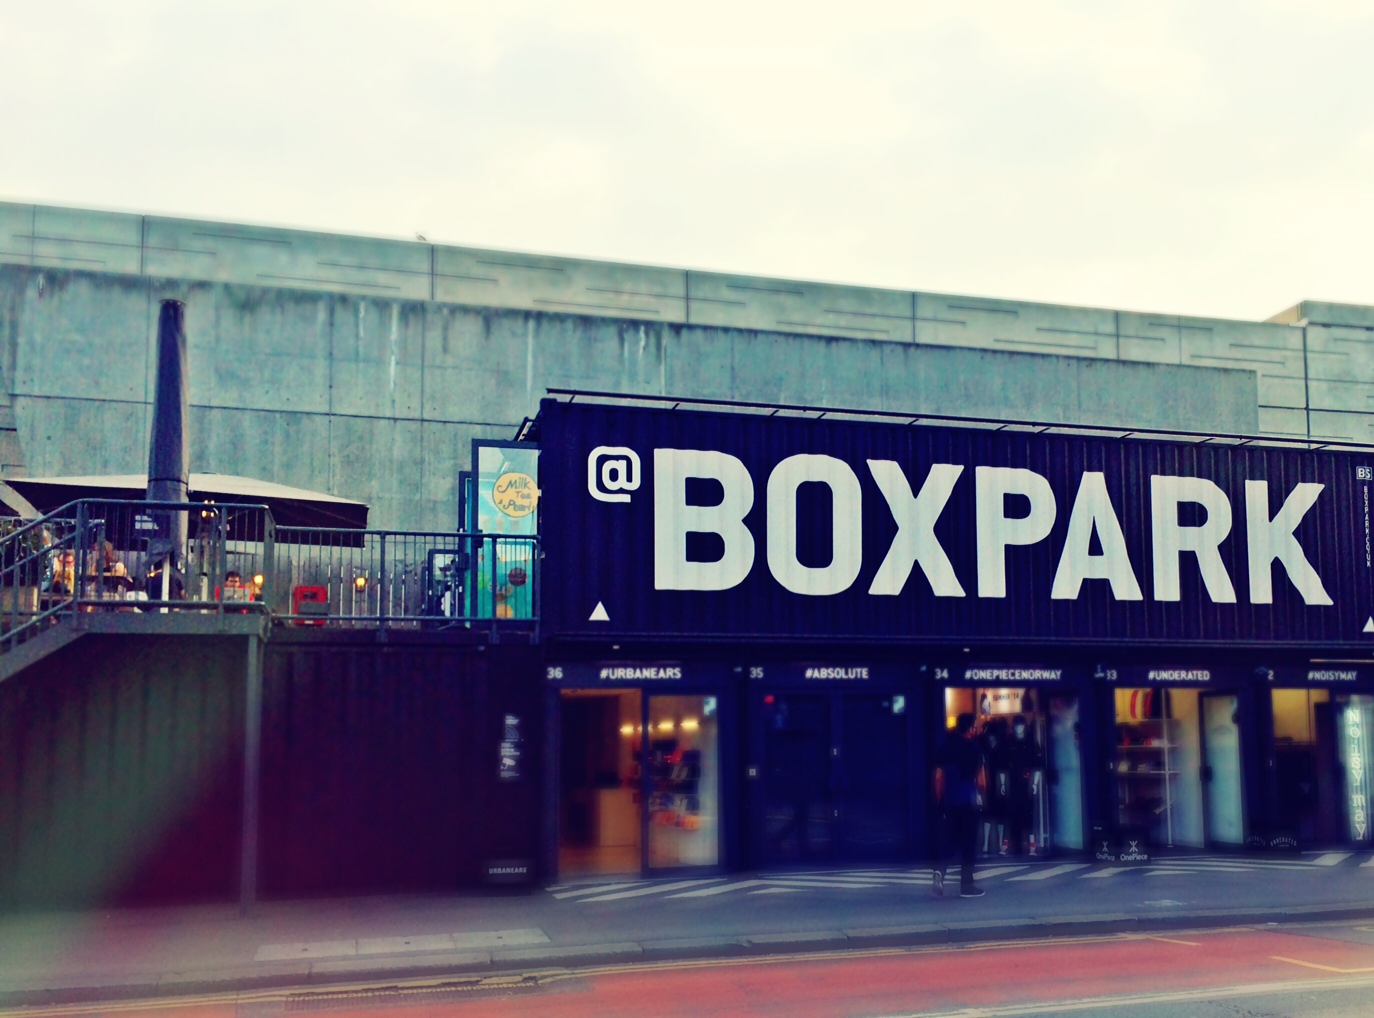 @Boxpark Shoreditch